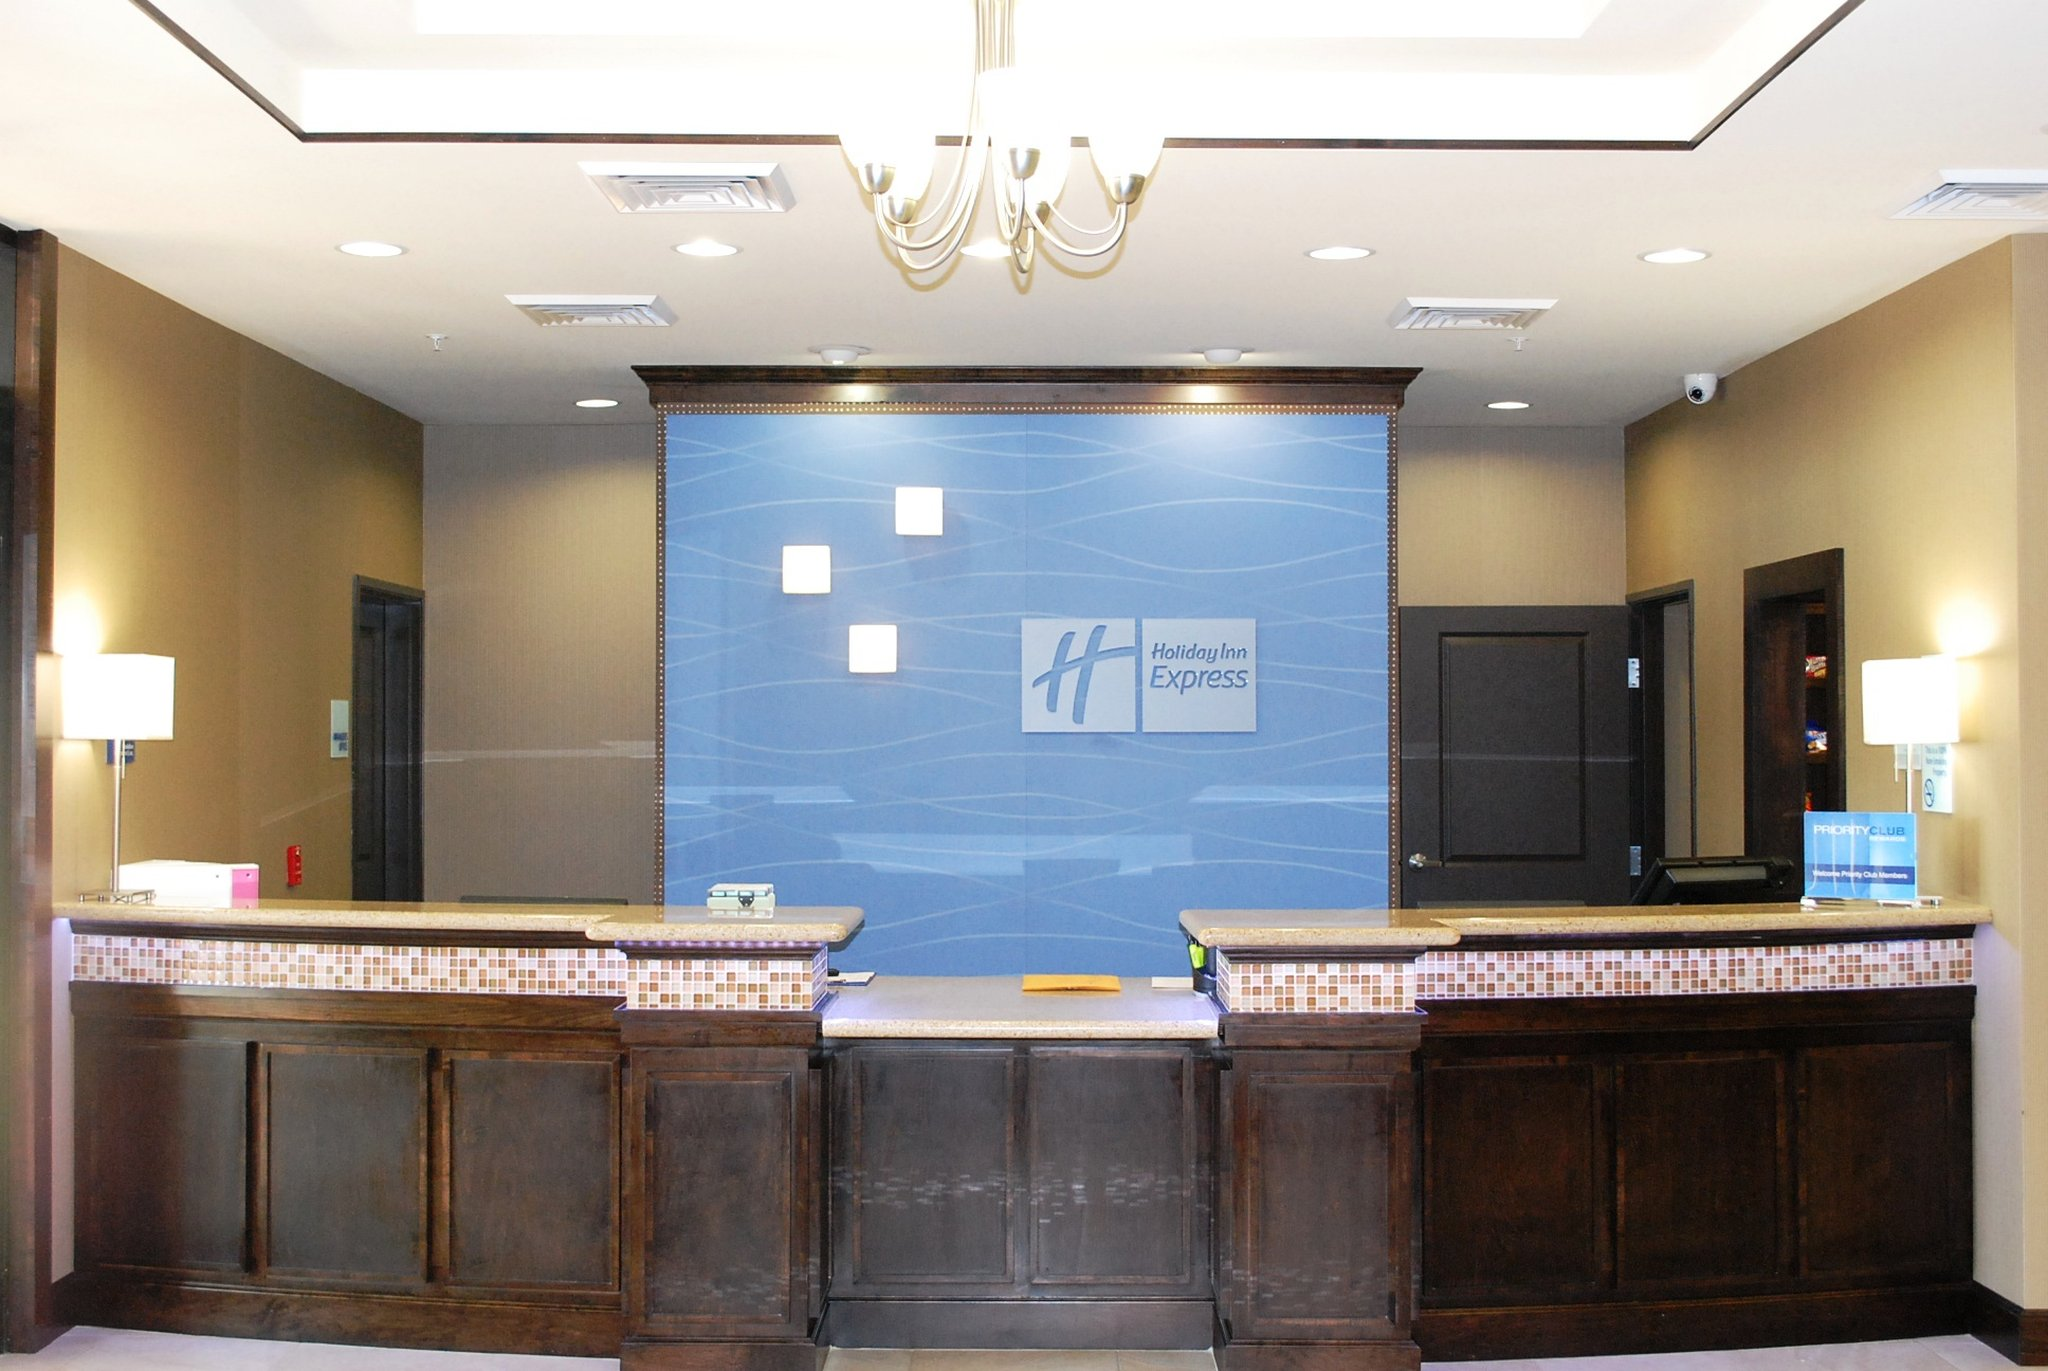 Holiday Inn Express & Stes Houston South